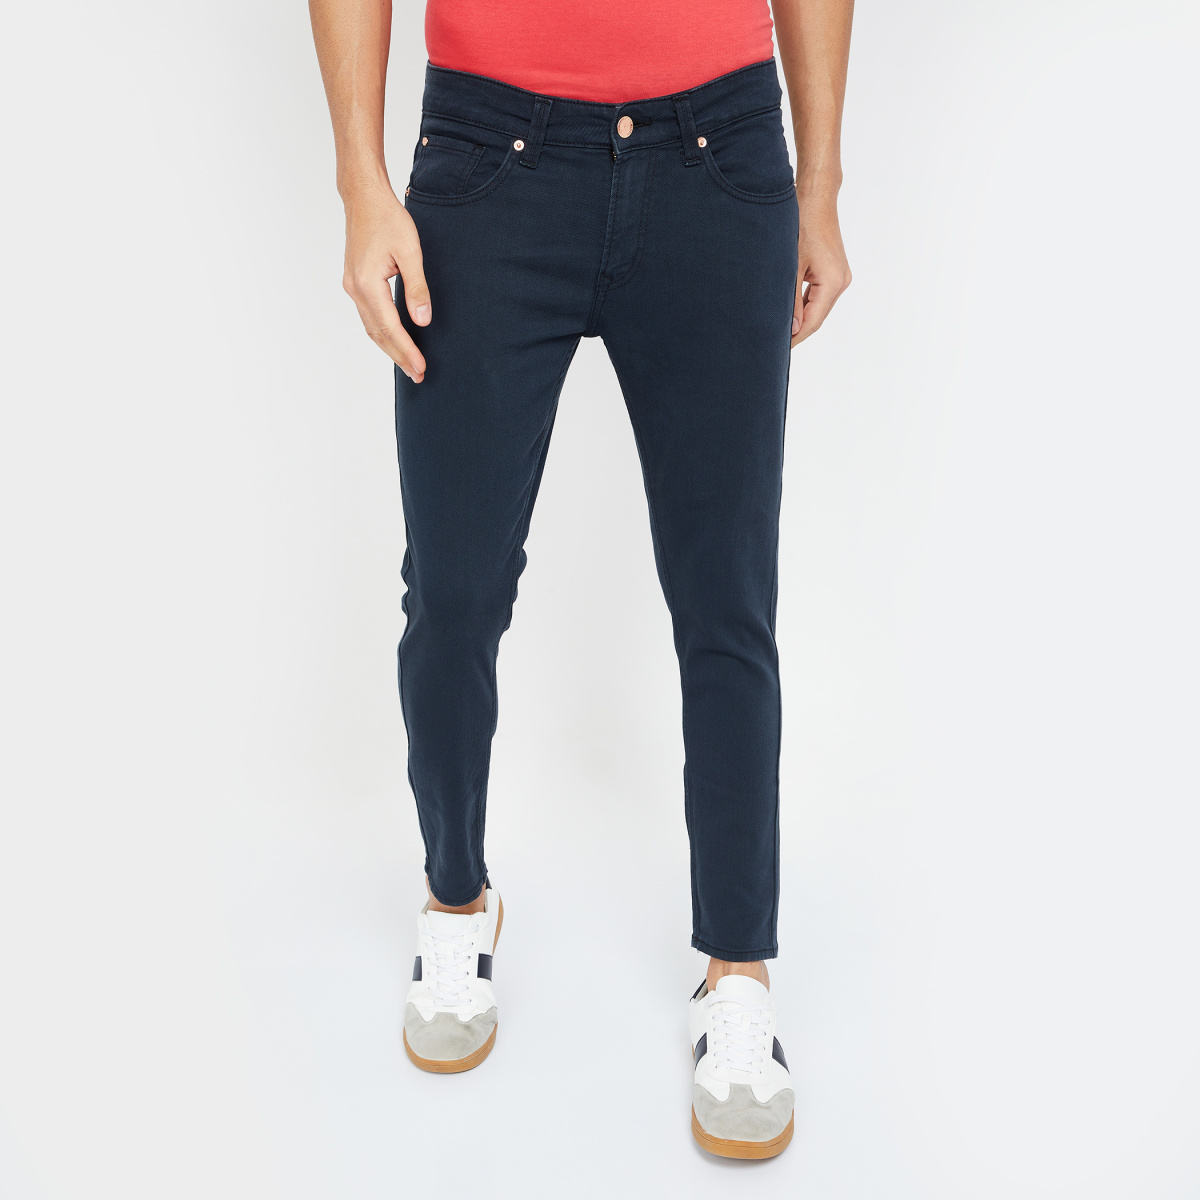 SPYKAR Solid Slim Tapered Jeans